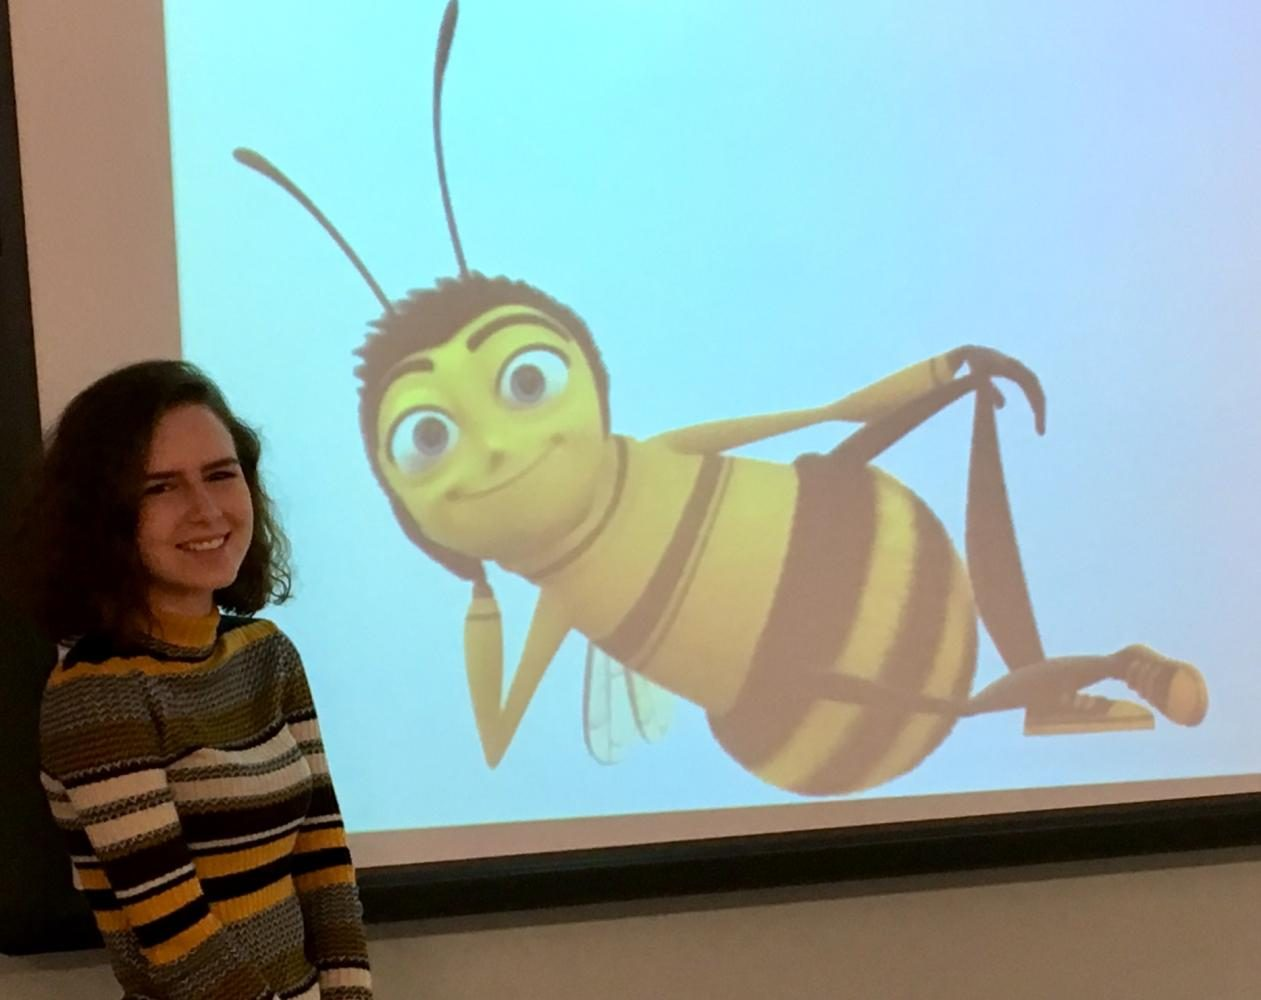 Emma Wynkoop proposes effective ways to save the bees